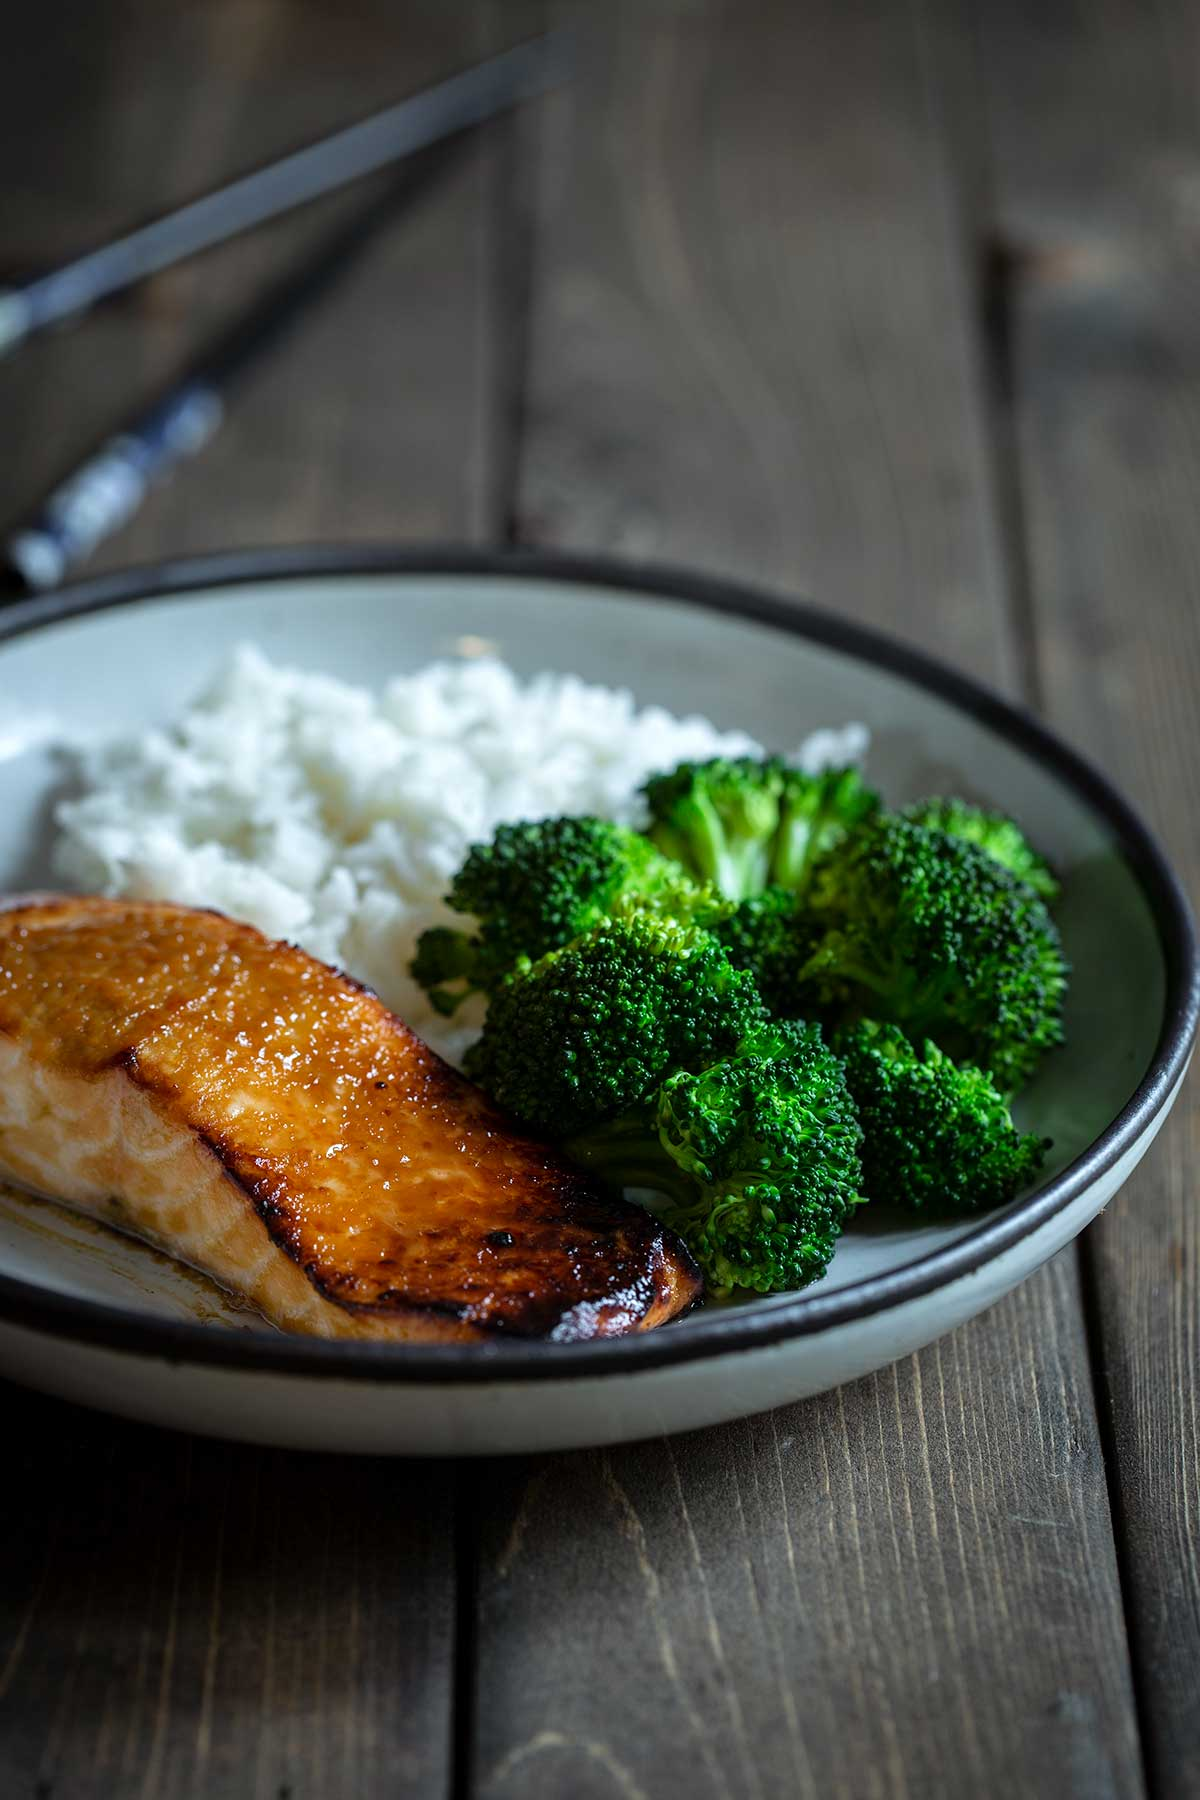 Miso salmon on plate with rice and broccoli